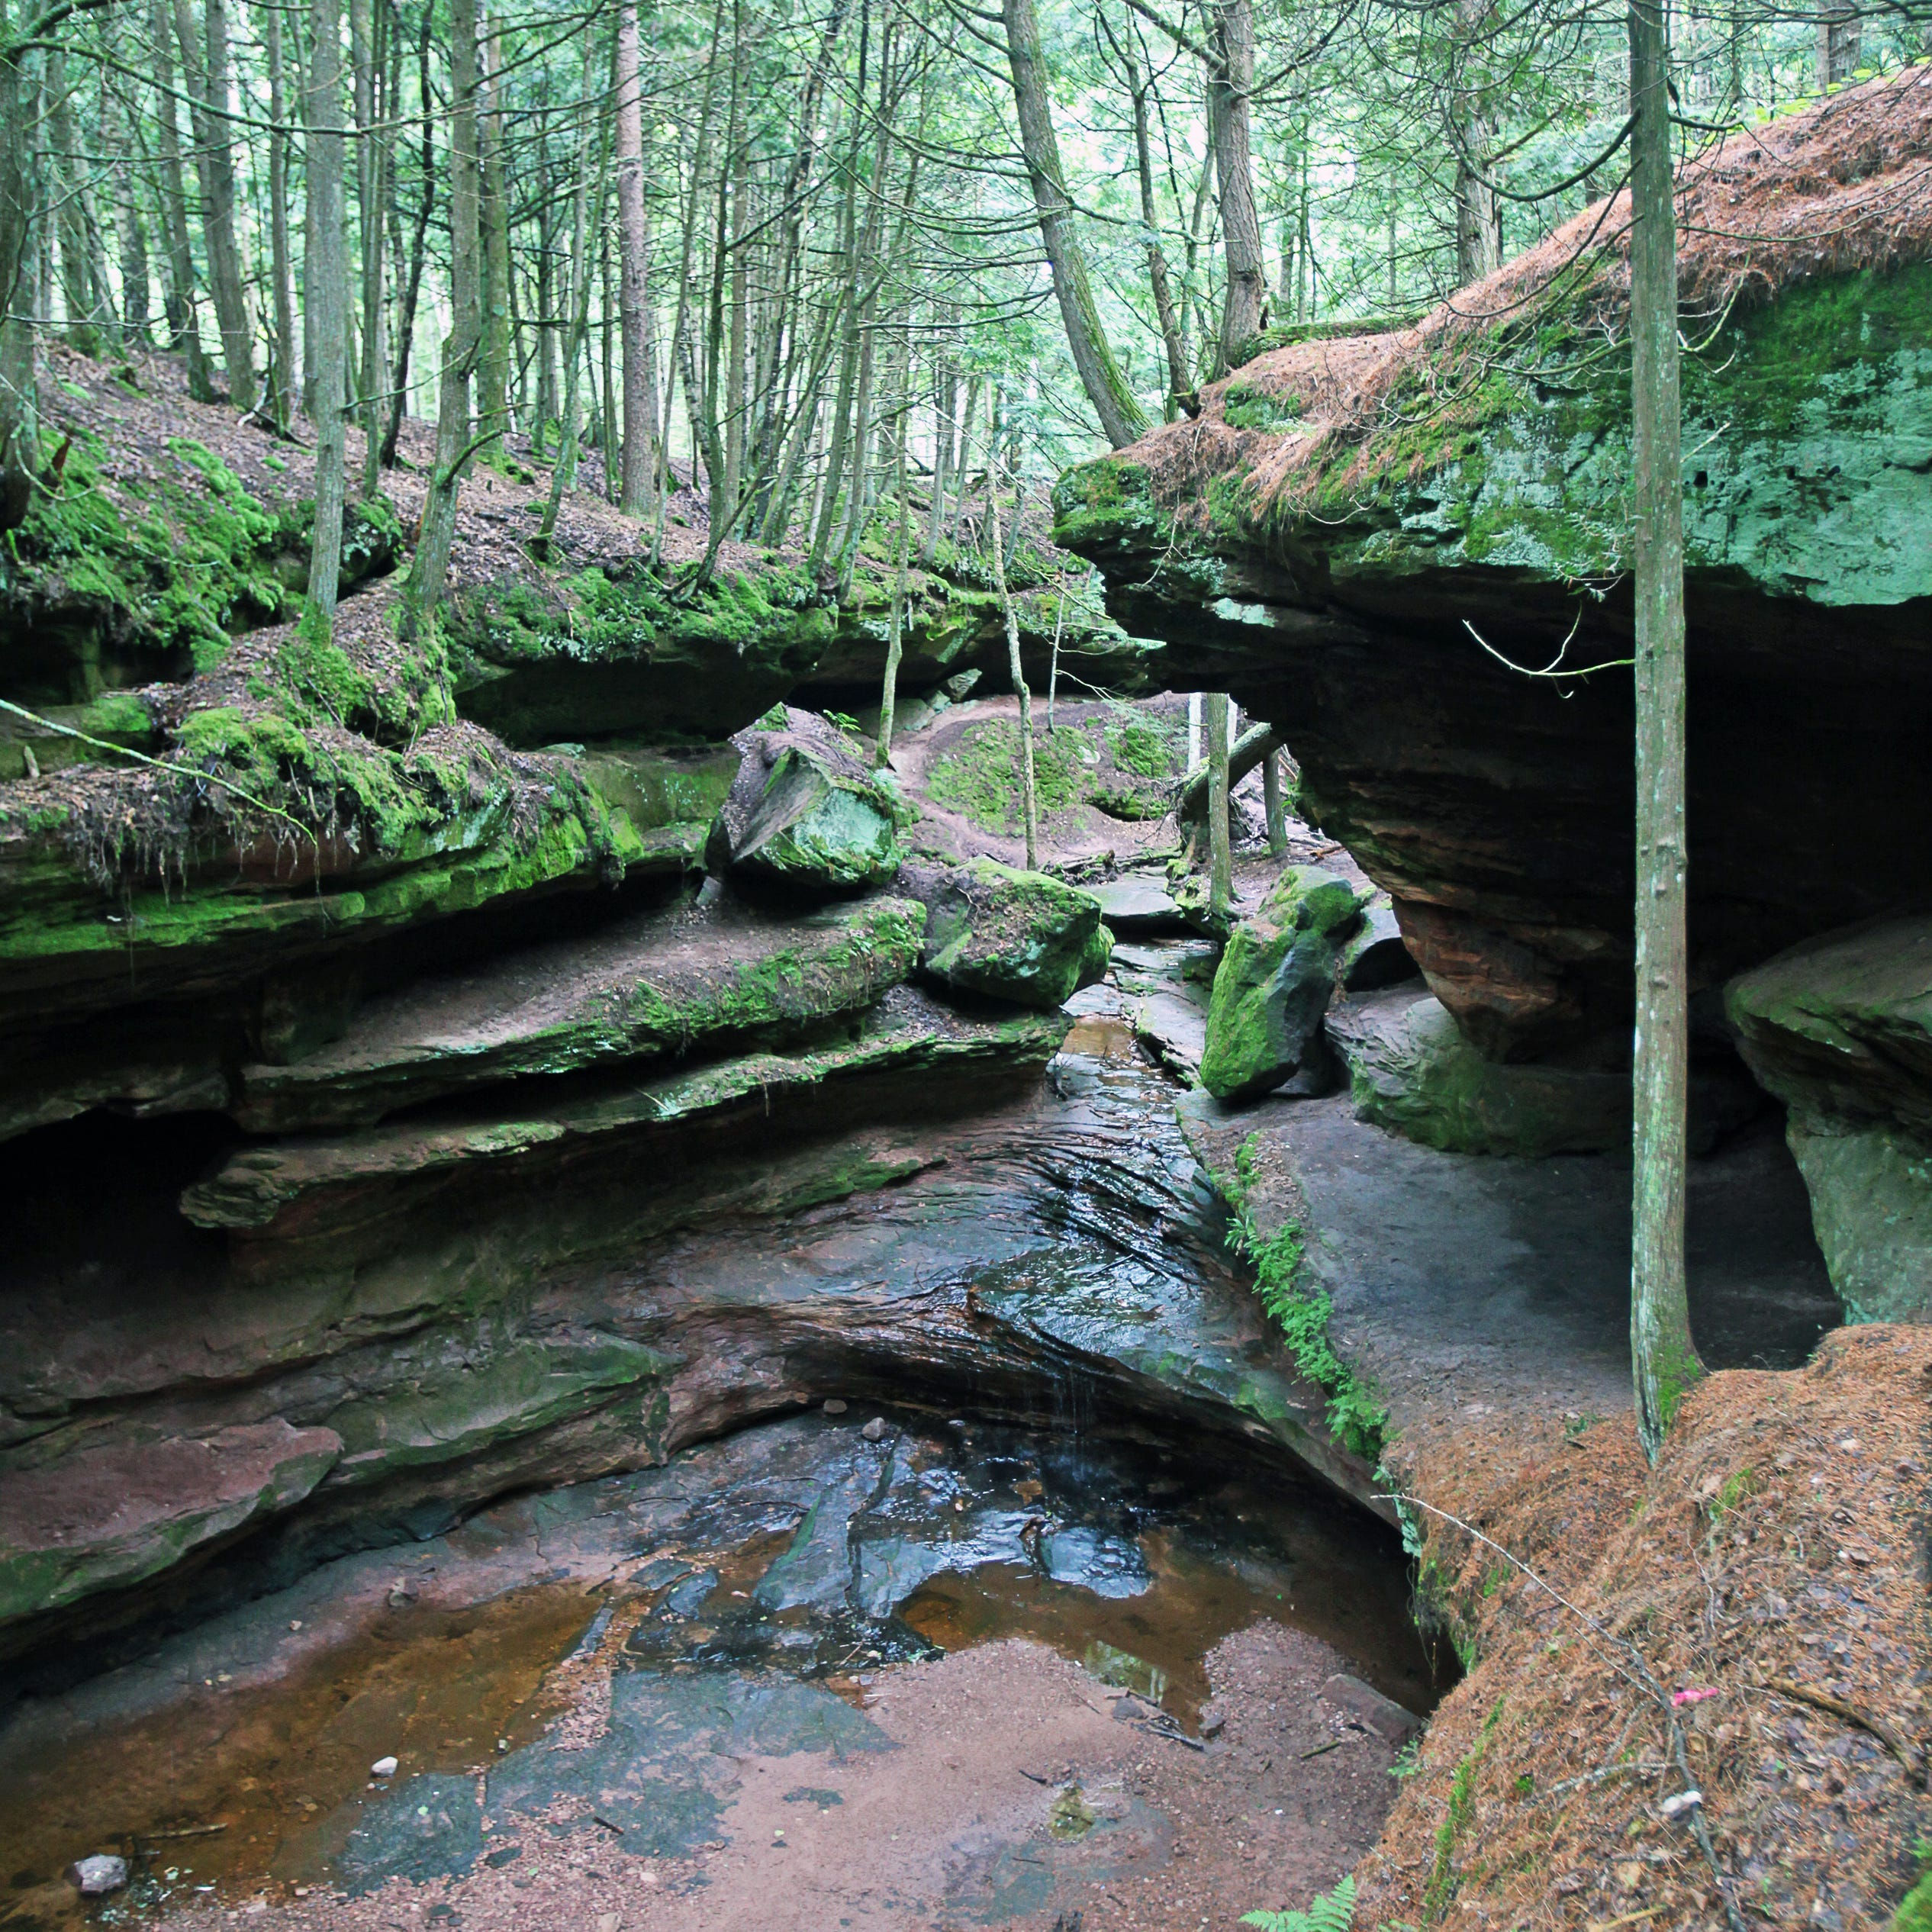 Spring is the best time to visit Houghton Falls in a scenic gorge on the Bayfield peninsula